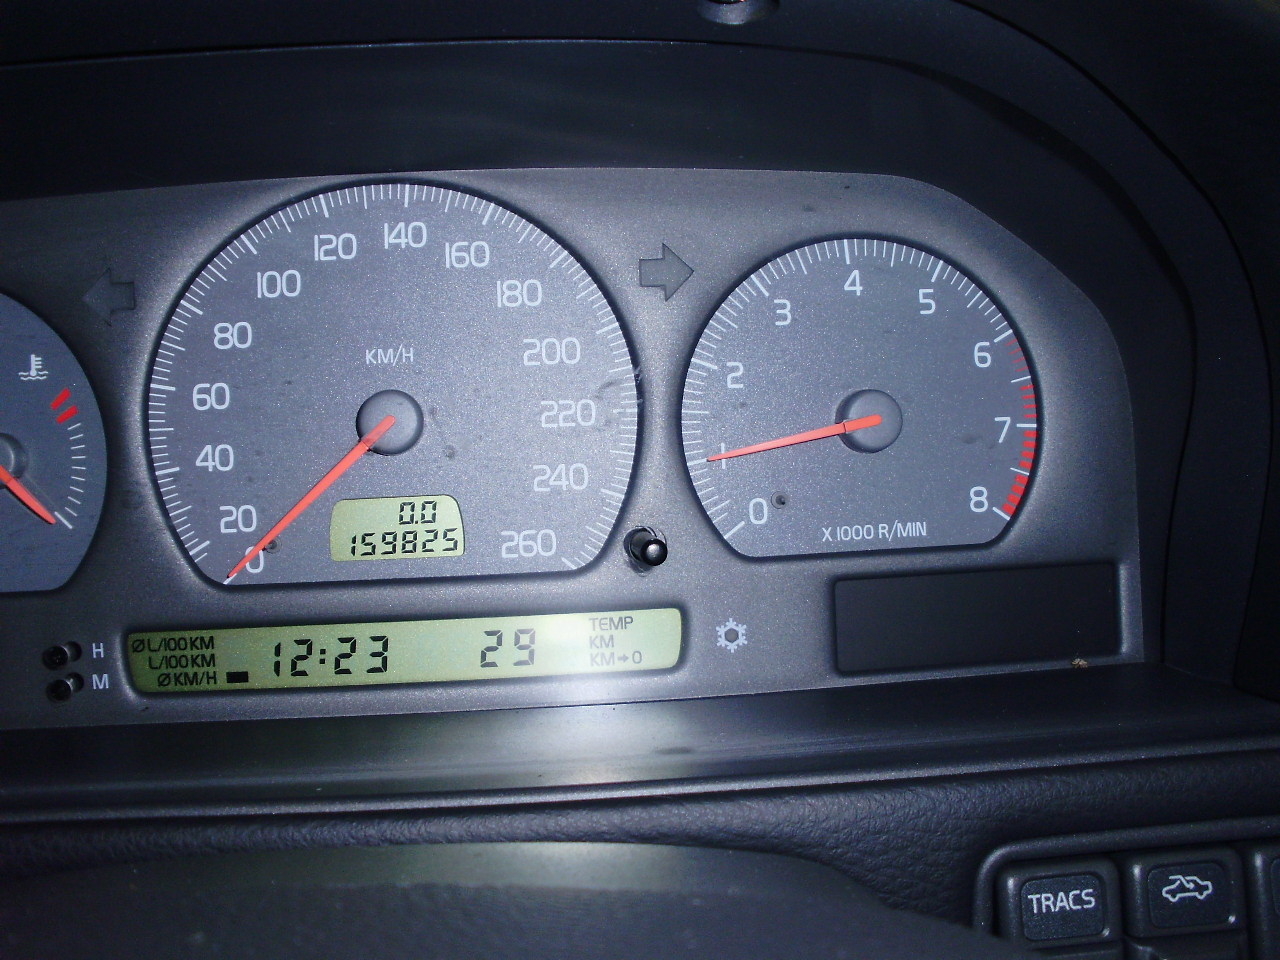 Volvo 850 Tachometer Wiring Diagram Free Download 2000 S70 V70 Abs Module Repair Car Instructions